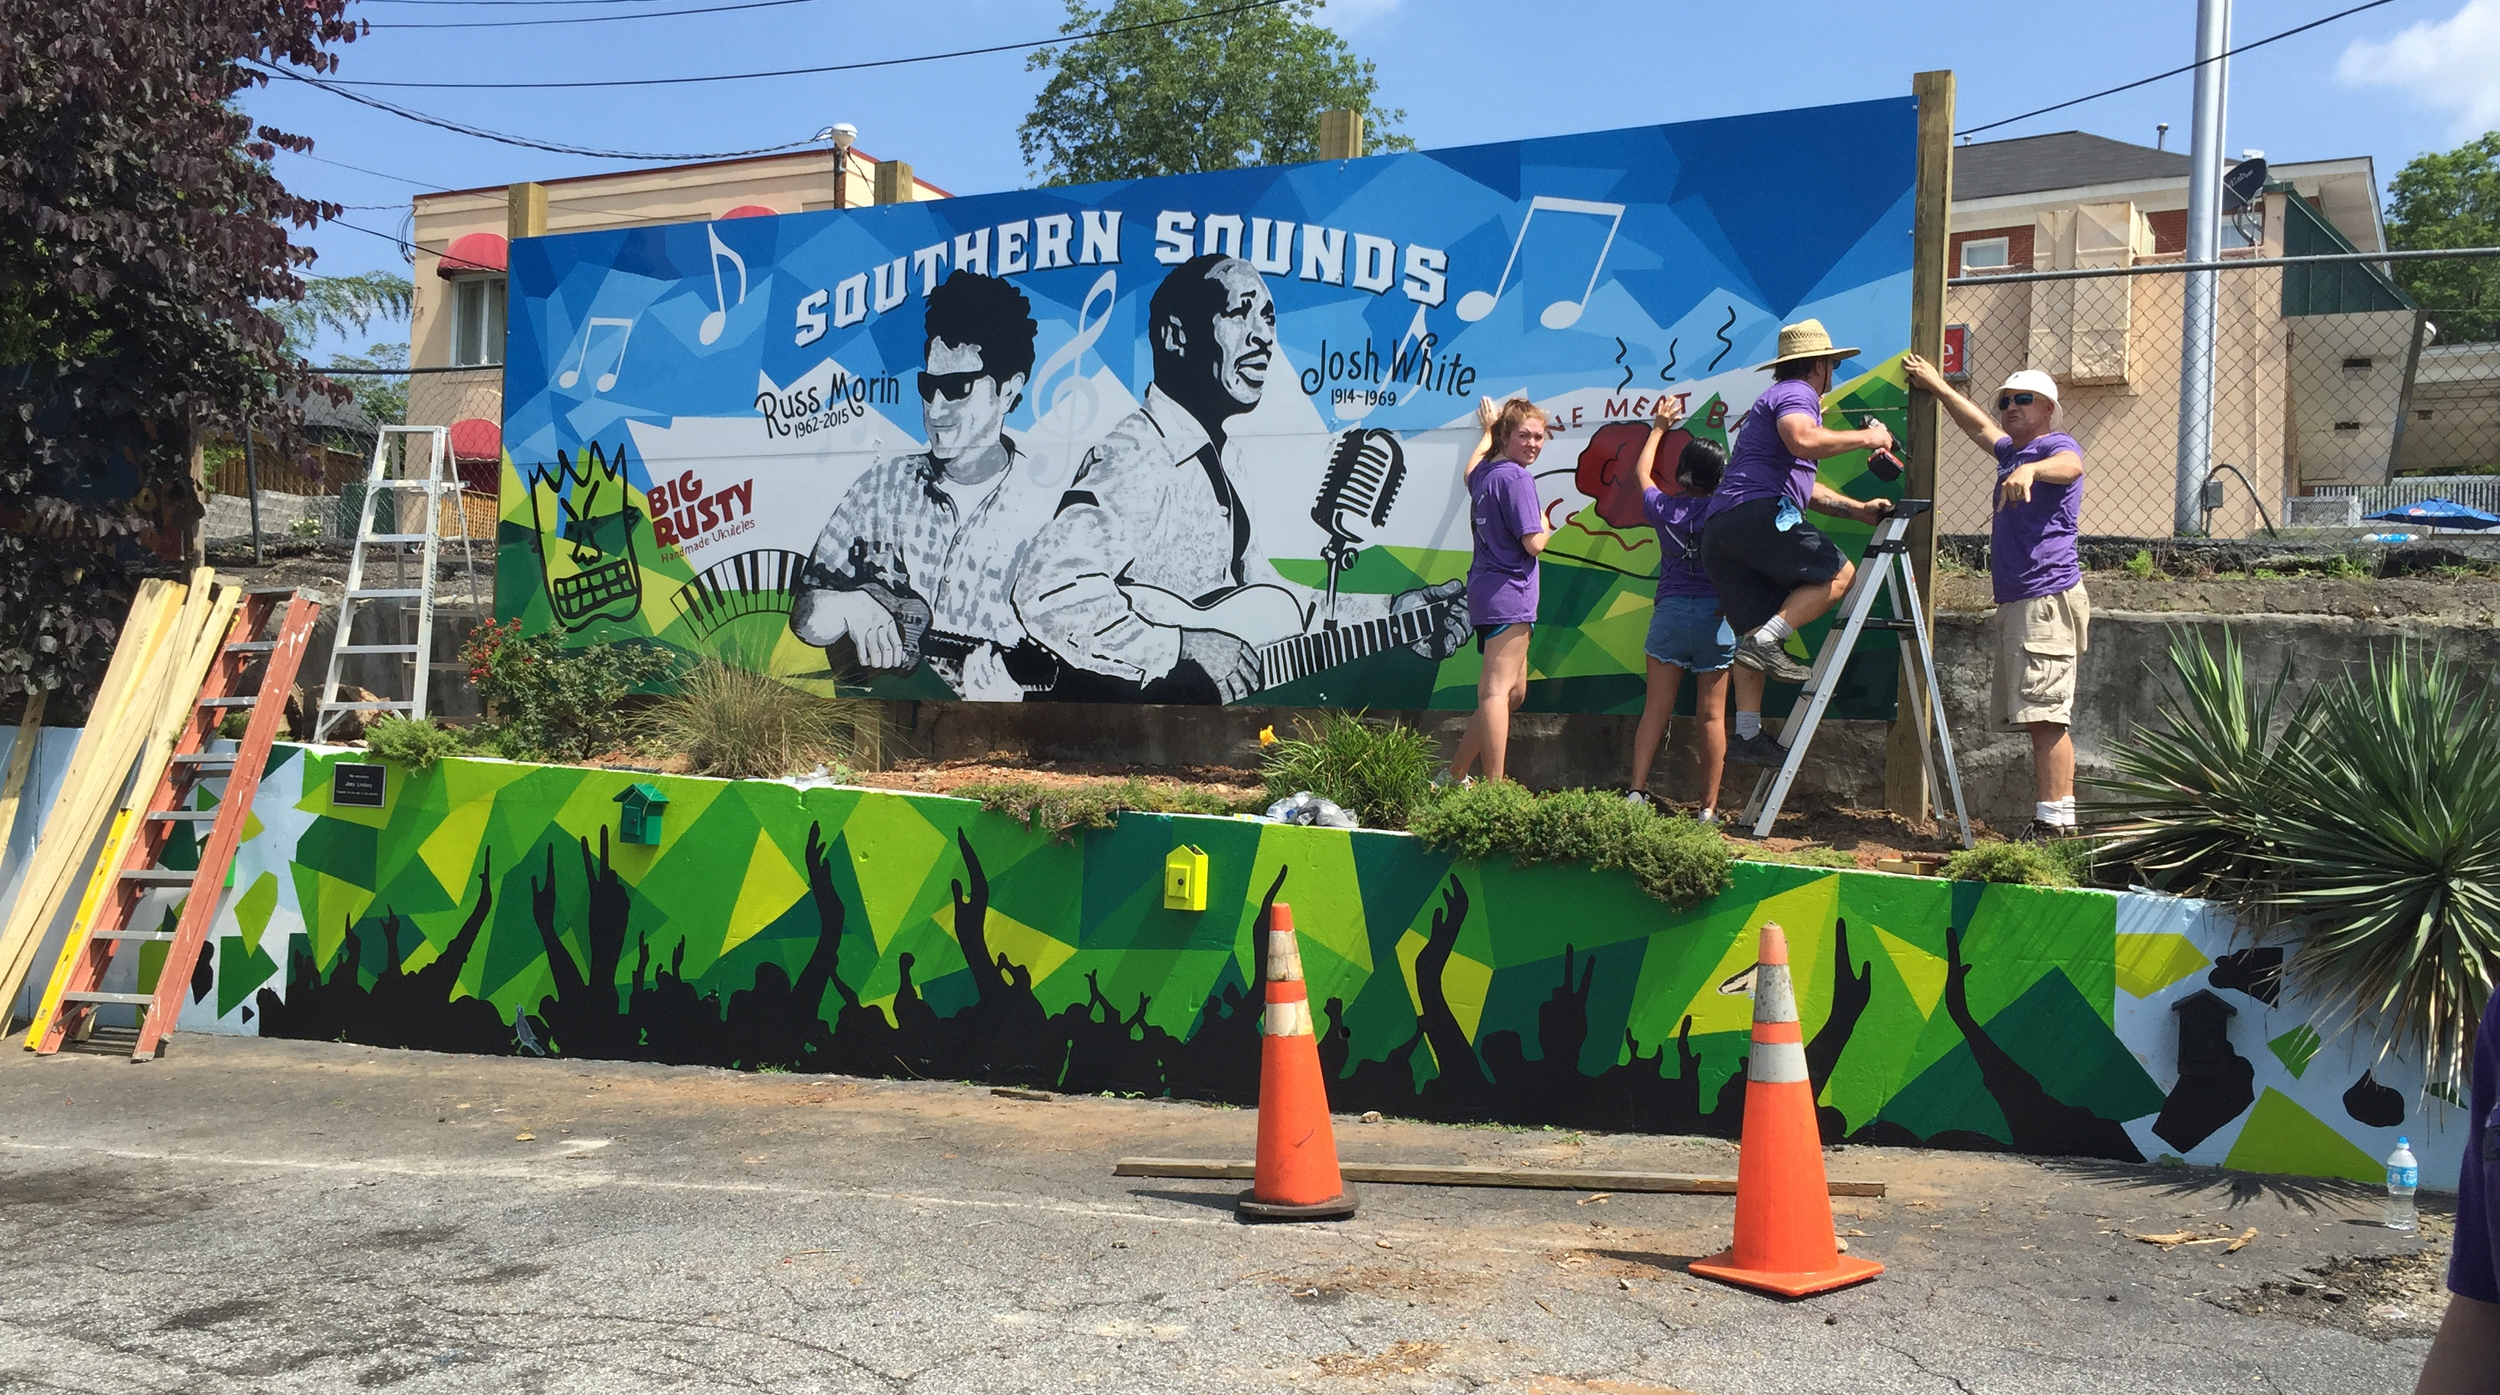 Musicians honored in the Southern Sounds mural: Russ Morin (L) and Josh White (R)